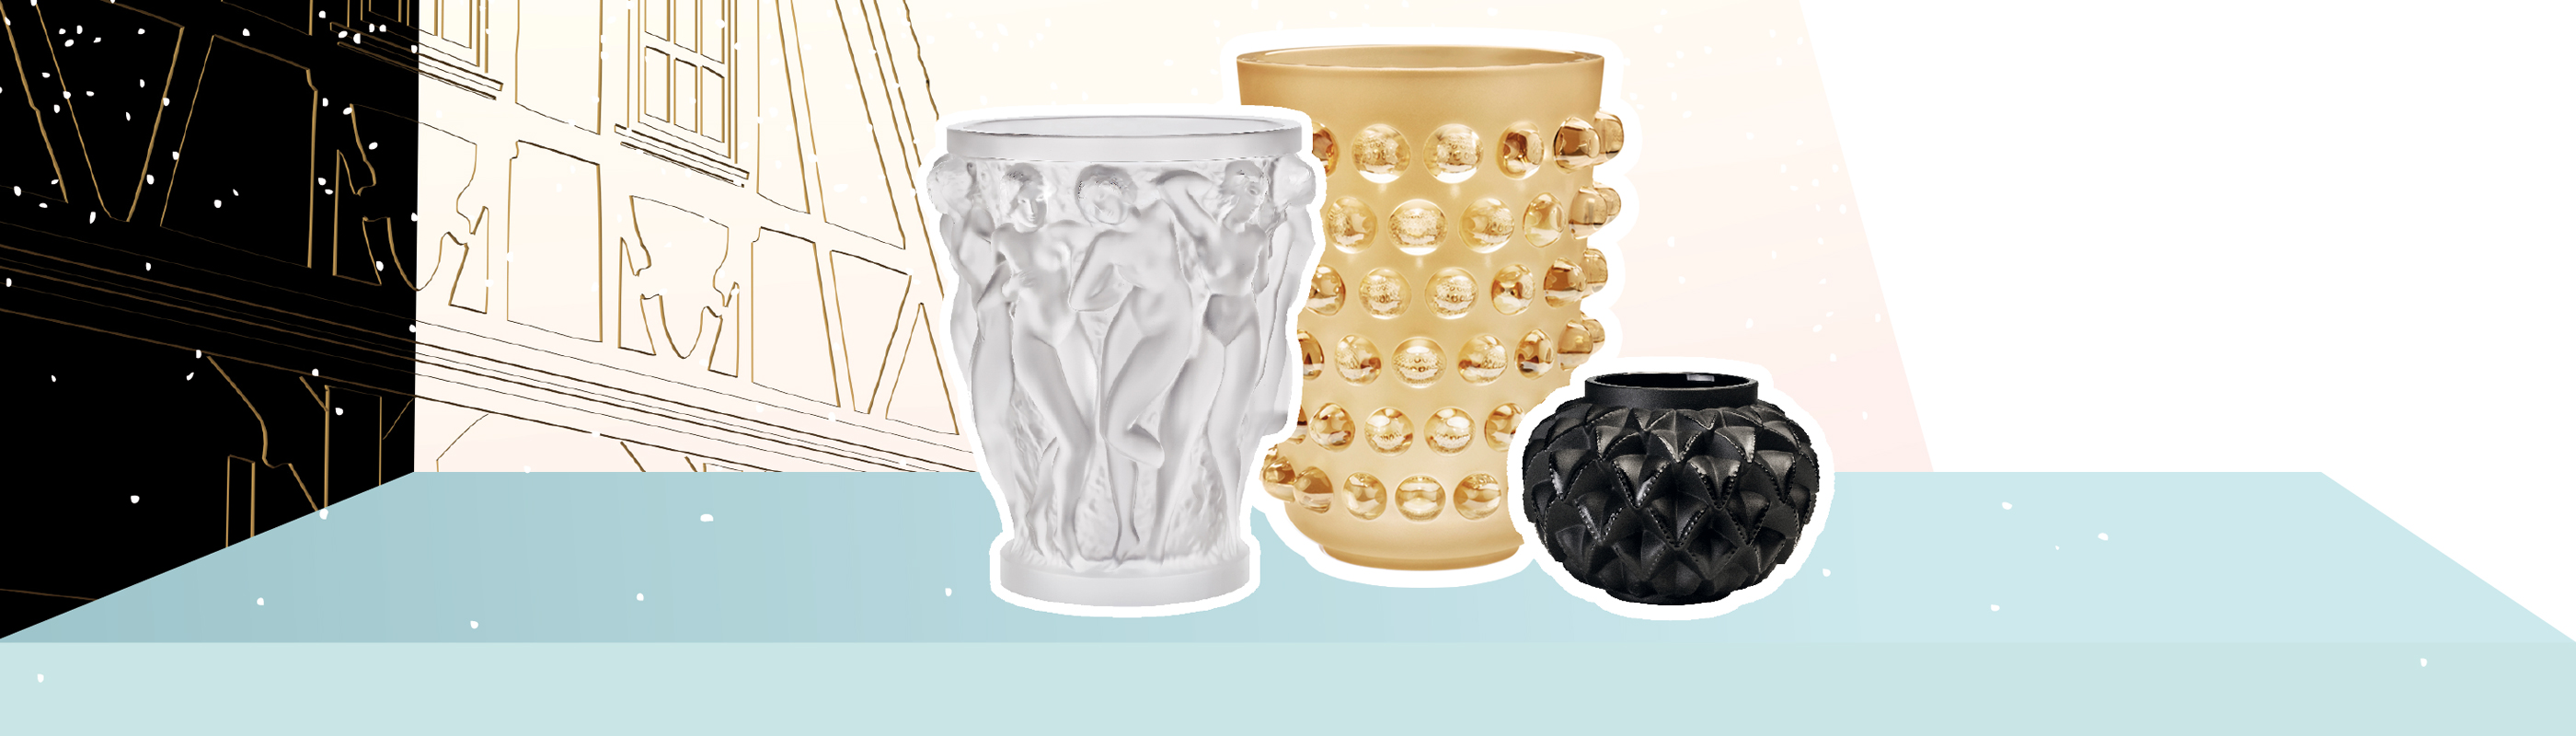 Homeware Holiday gifts